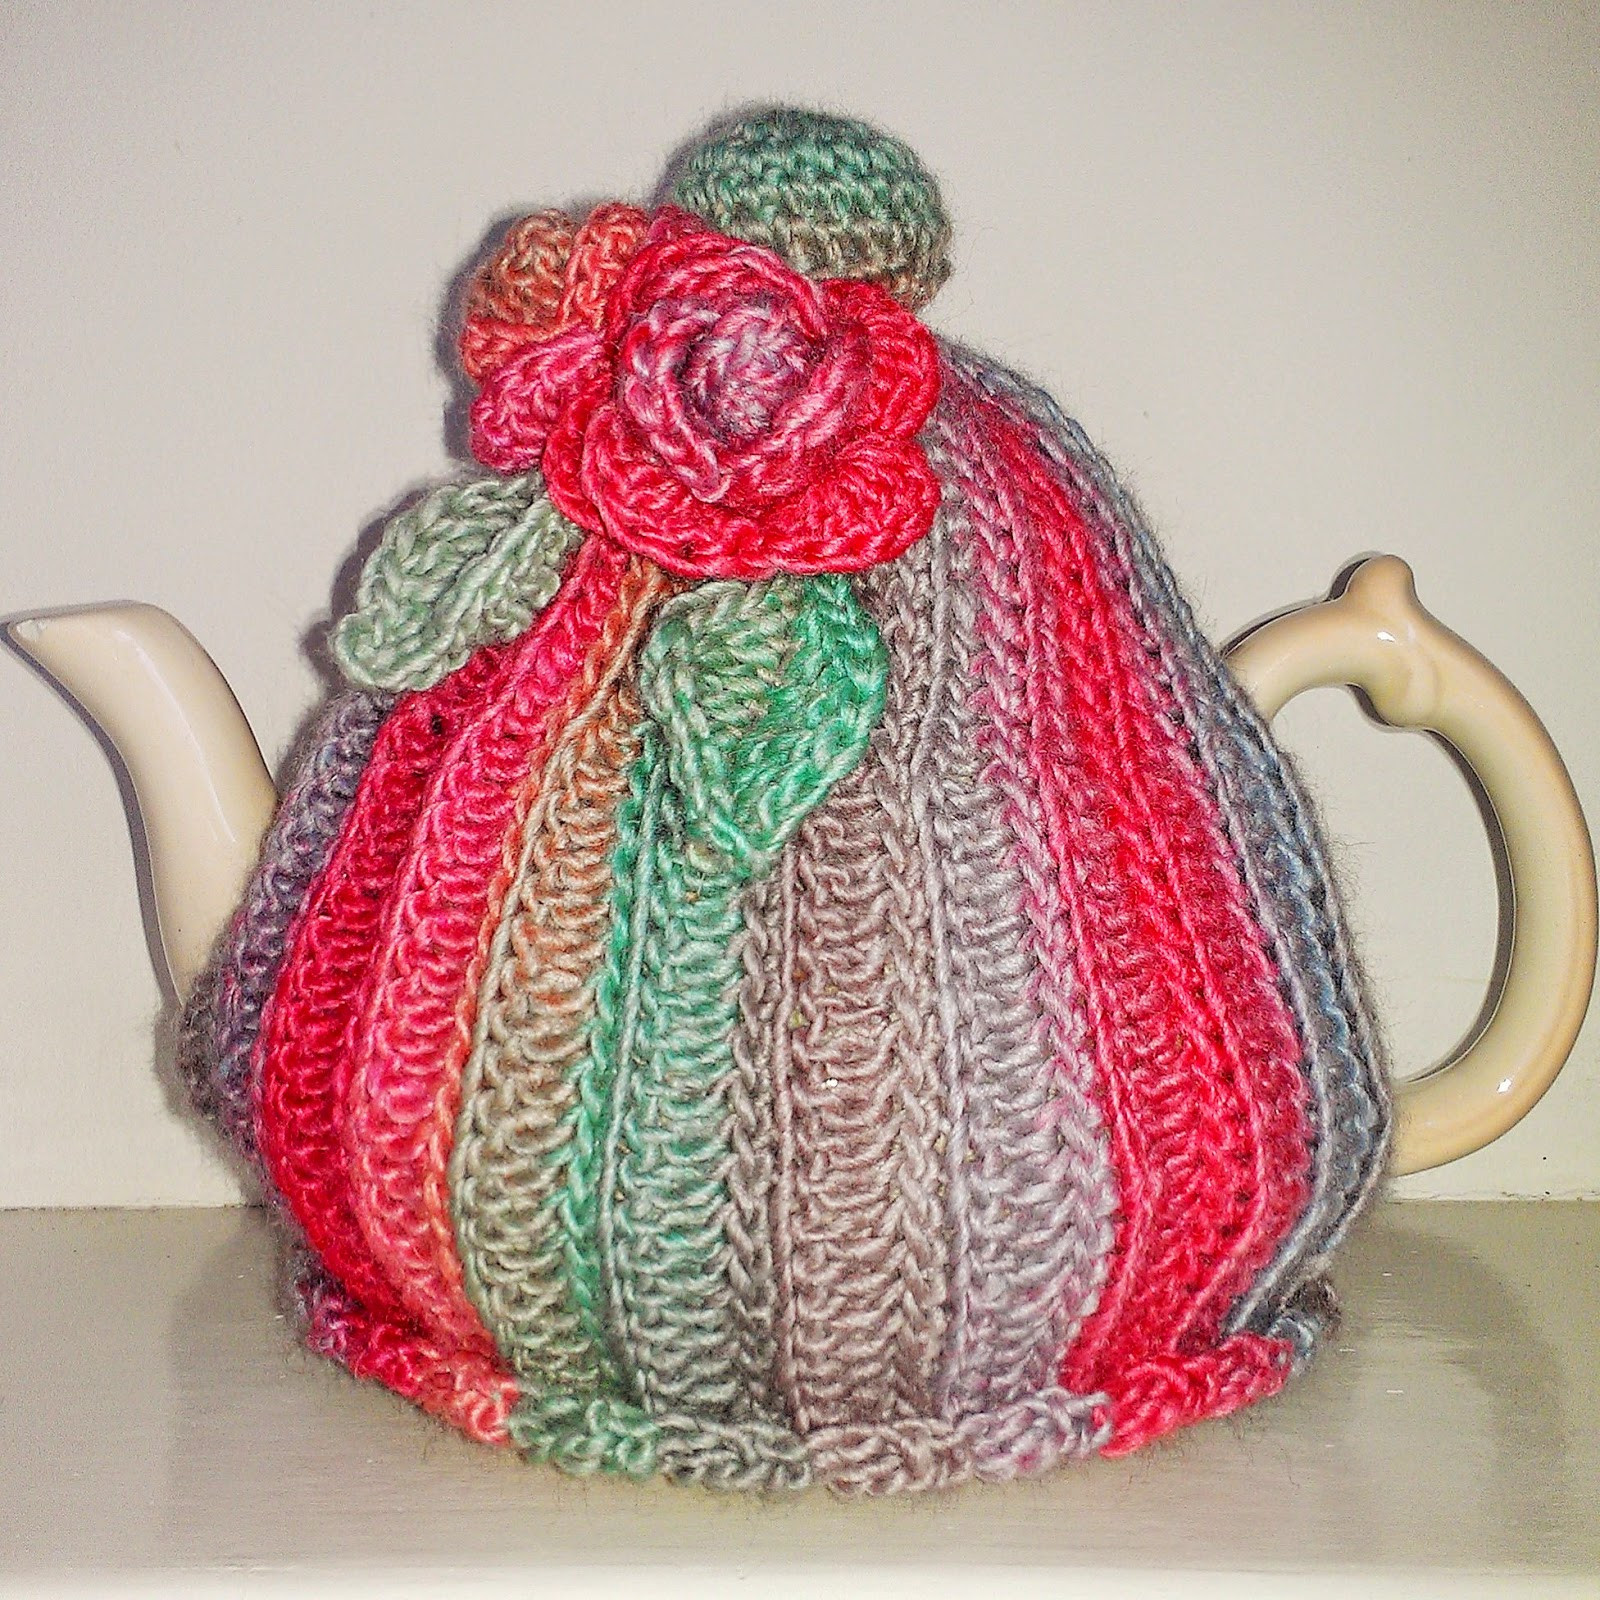 Tea Cozy Pattern Lovely Craft A Cure for Cancer Free Tea Cosy Patterns Crochet Of Awesome 46 Photos Tea Cozy Pattern